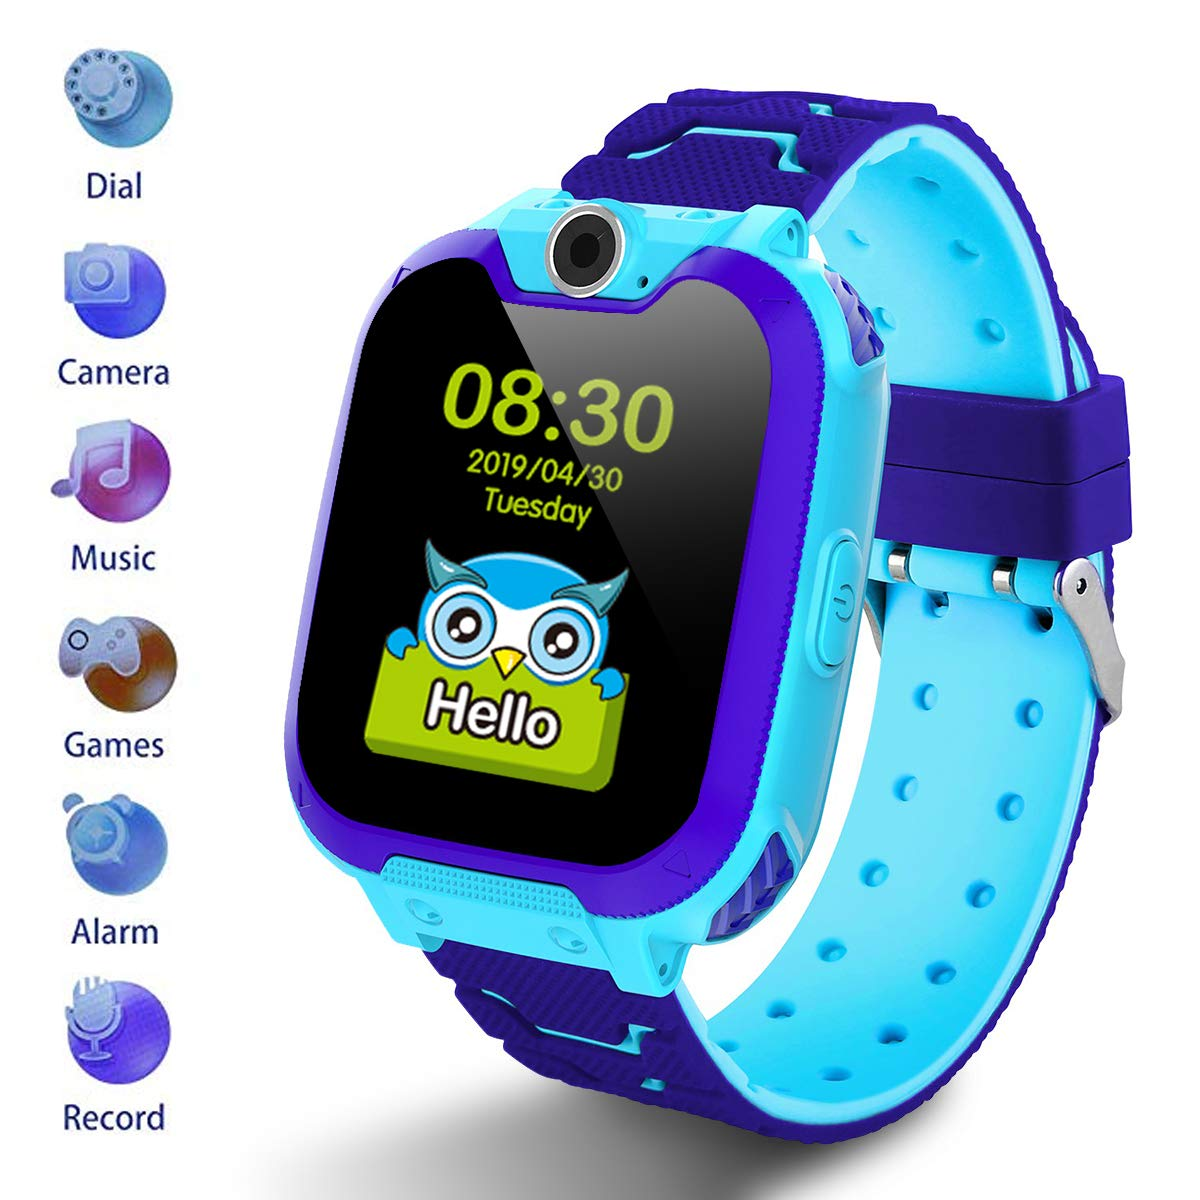 HuaWise Kids Smartwatch [SD Card Included], 1.54 inch Colorful Touch Screen Smartwatch for Children with Quick Dial, Camera and Music Player,Calculator and Alarm for Boys and Girls(NOT Support AT&T)